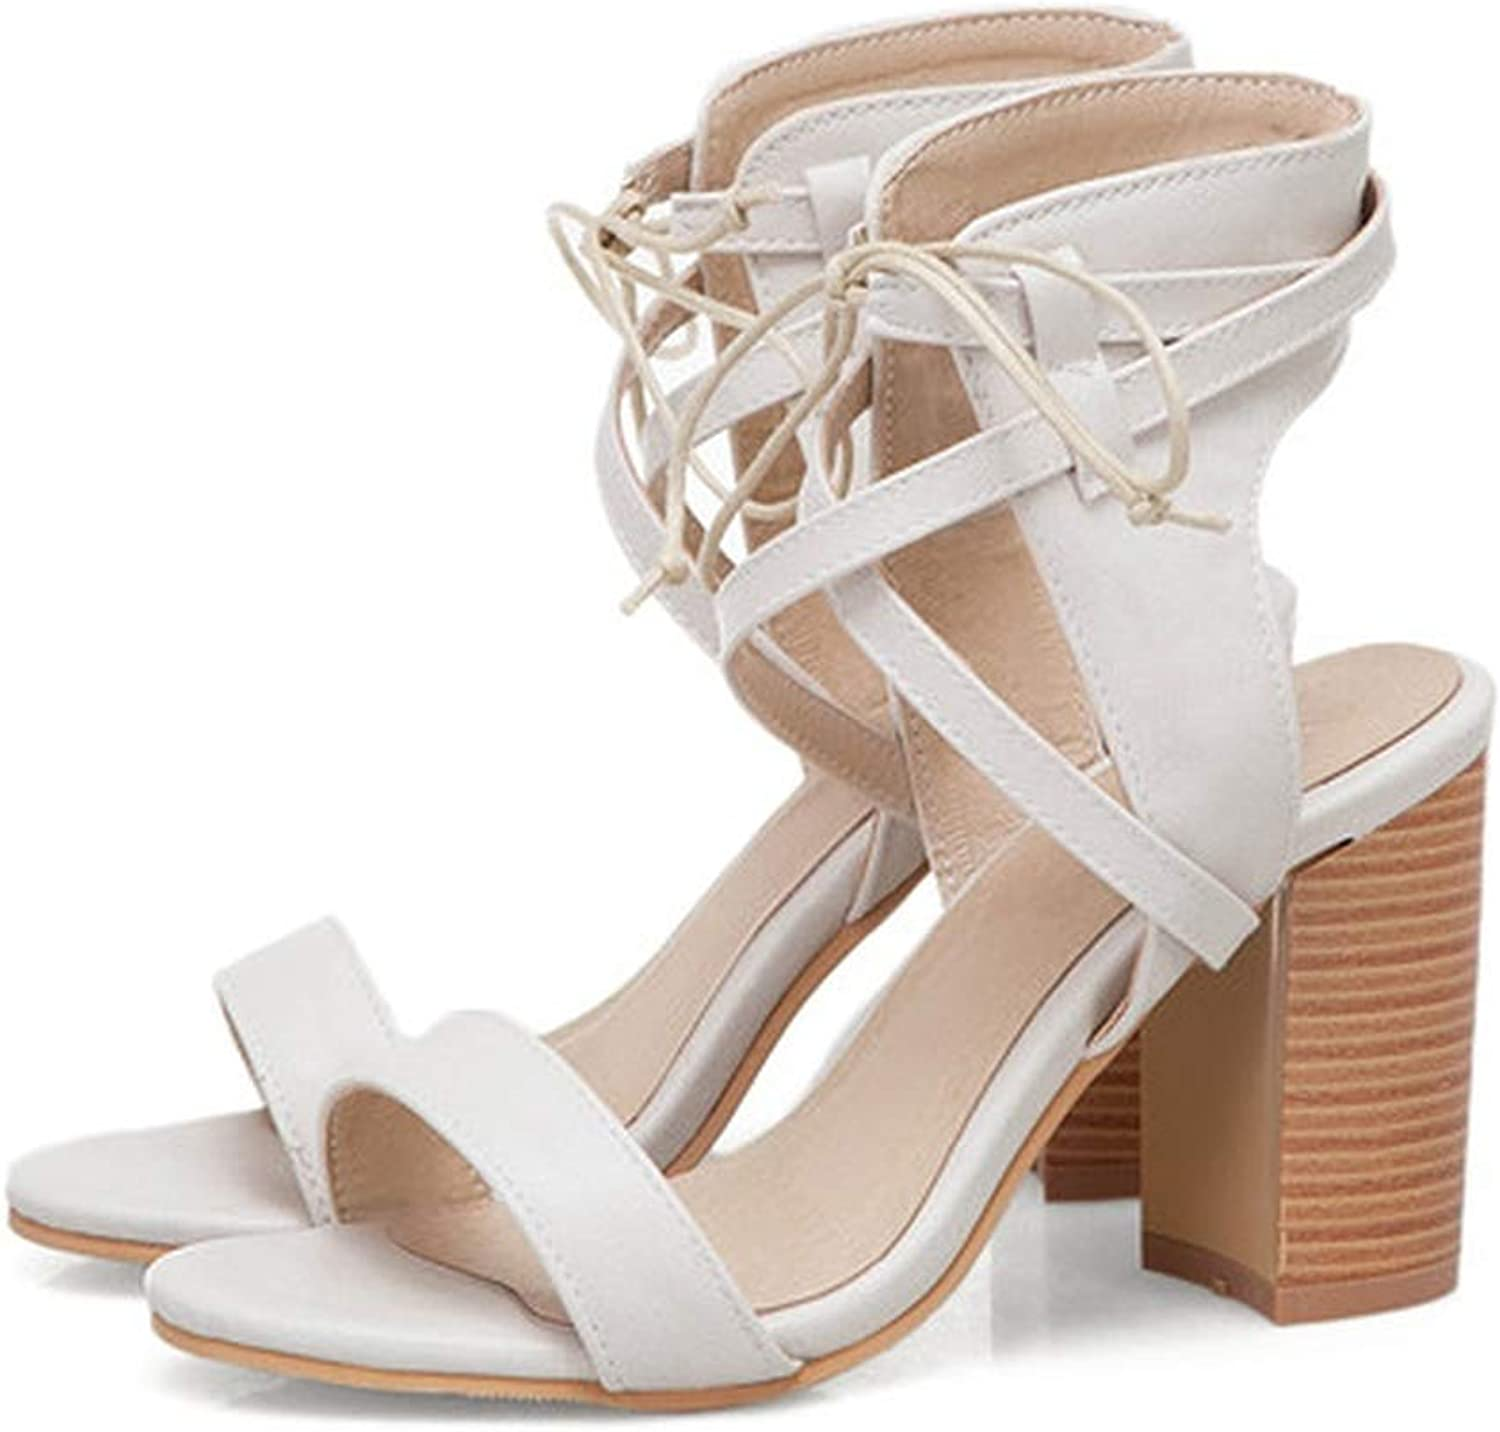 YuJi Gladiator shoes Lace Up Thick High Heel Ankle Wrap shoes Cross-Tied Open Toe Sandals,Beige,6.5